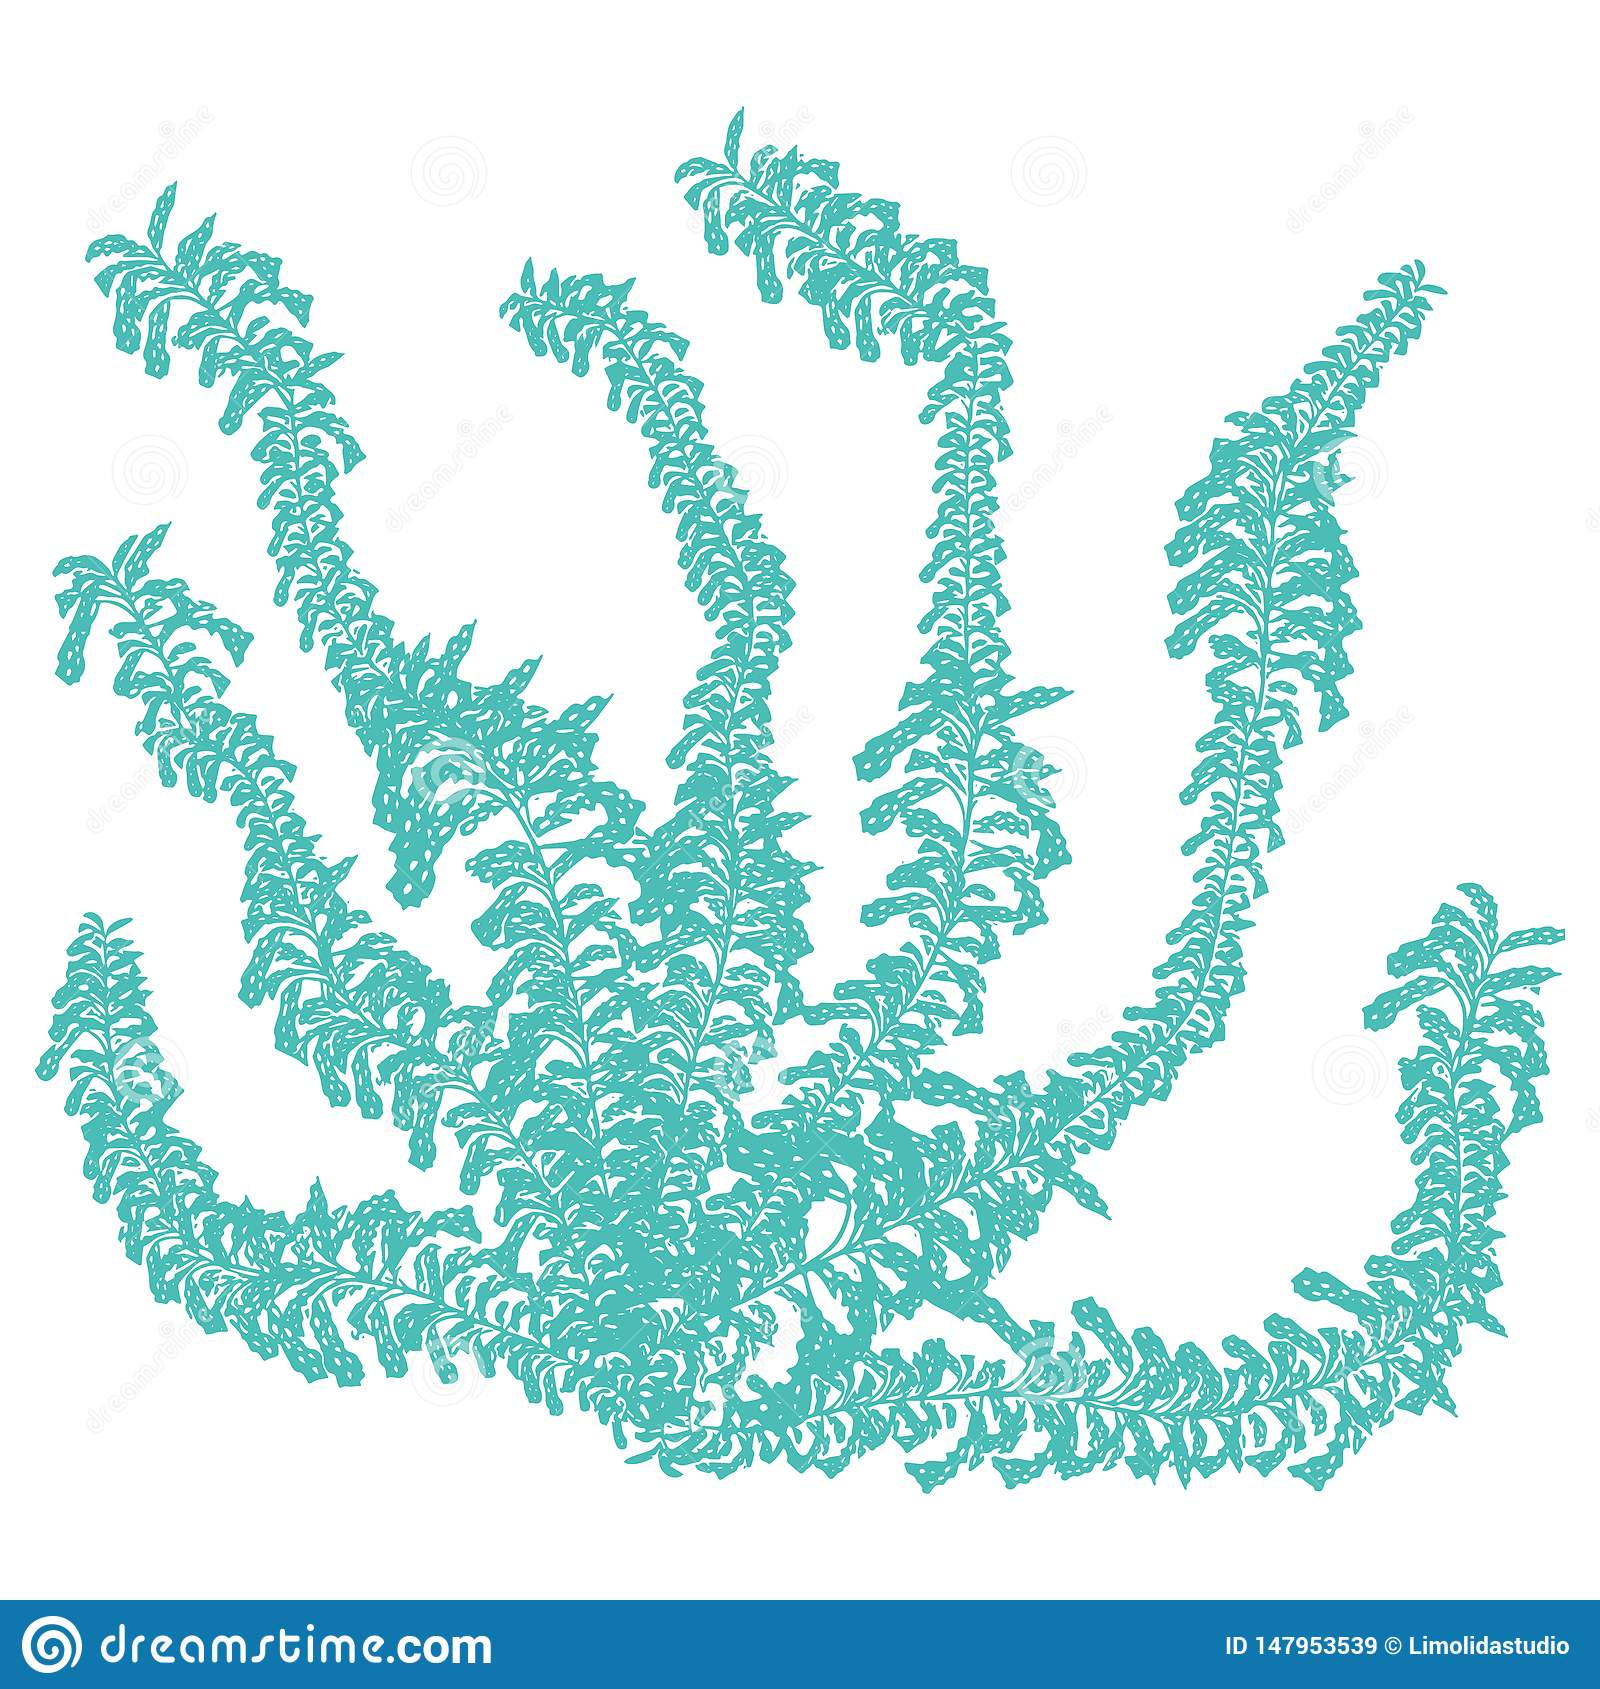 Cute light blue underwater seaweed cartoon vector illustration motif set. Hand drawn isolated coral reef elements clipart for